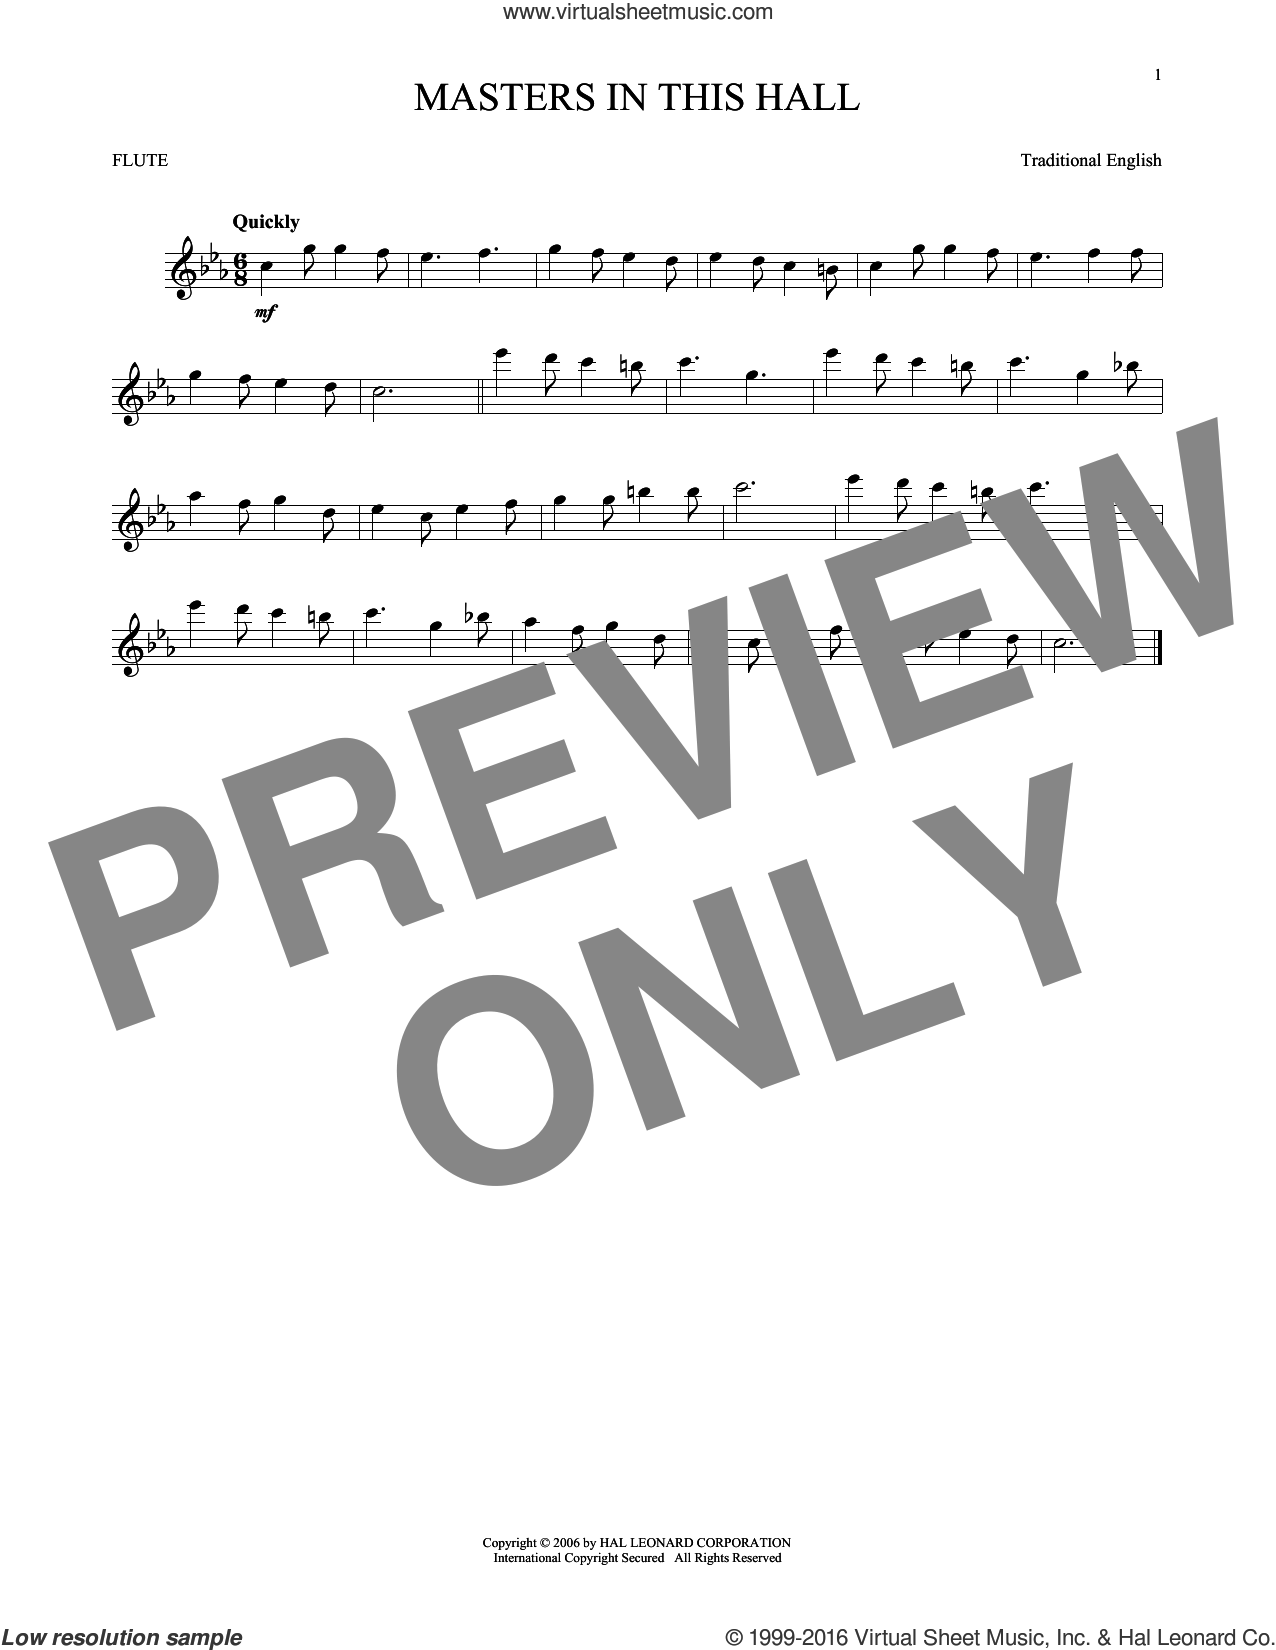 Masters In This Hall sheet music for flute solo, intermediate. Score Image Preview.